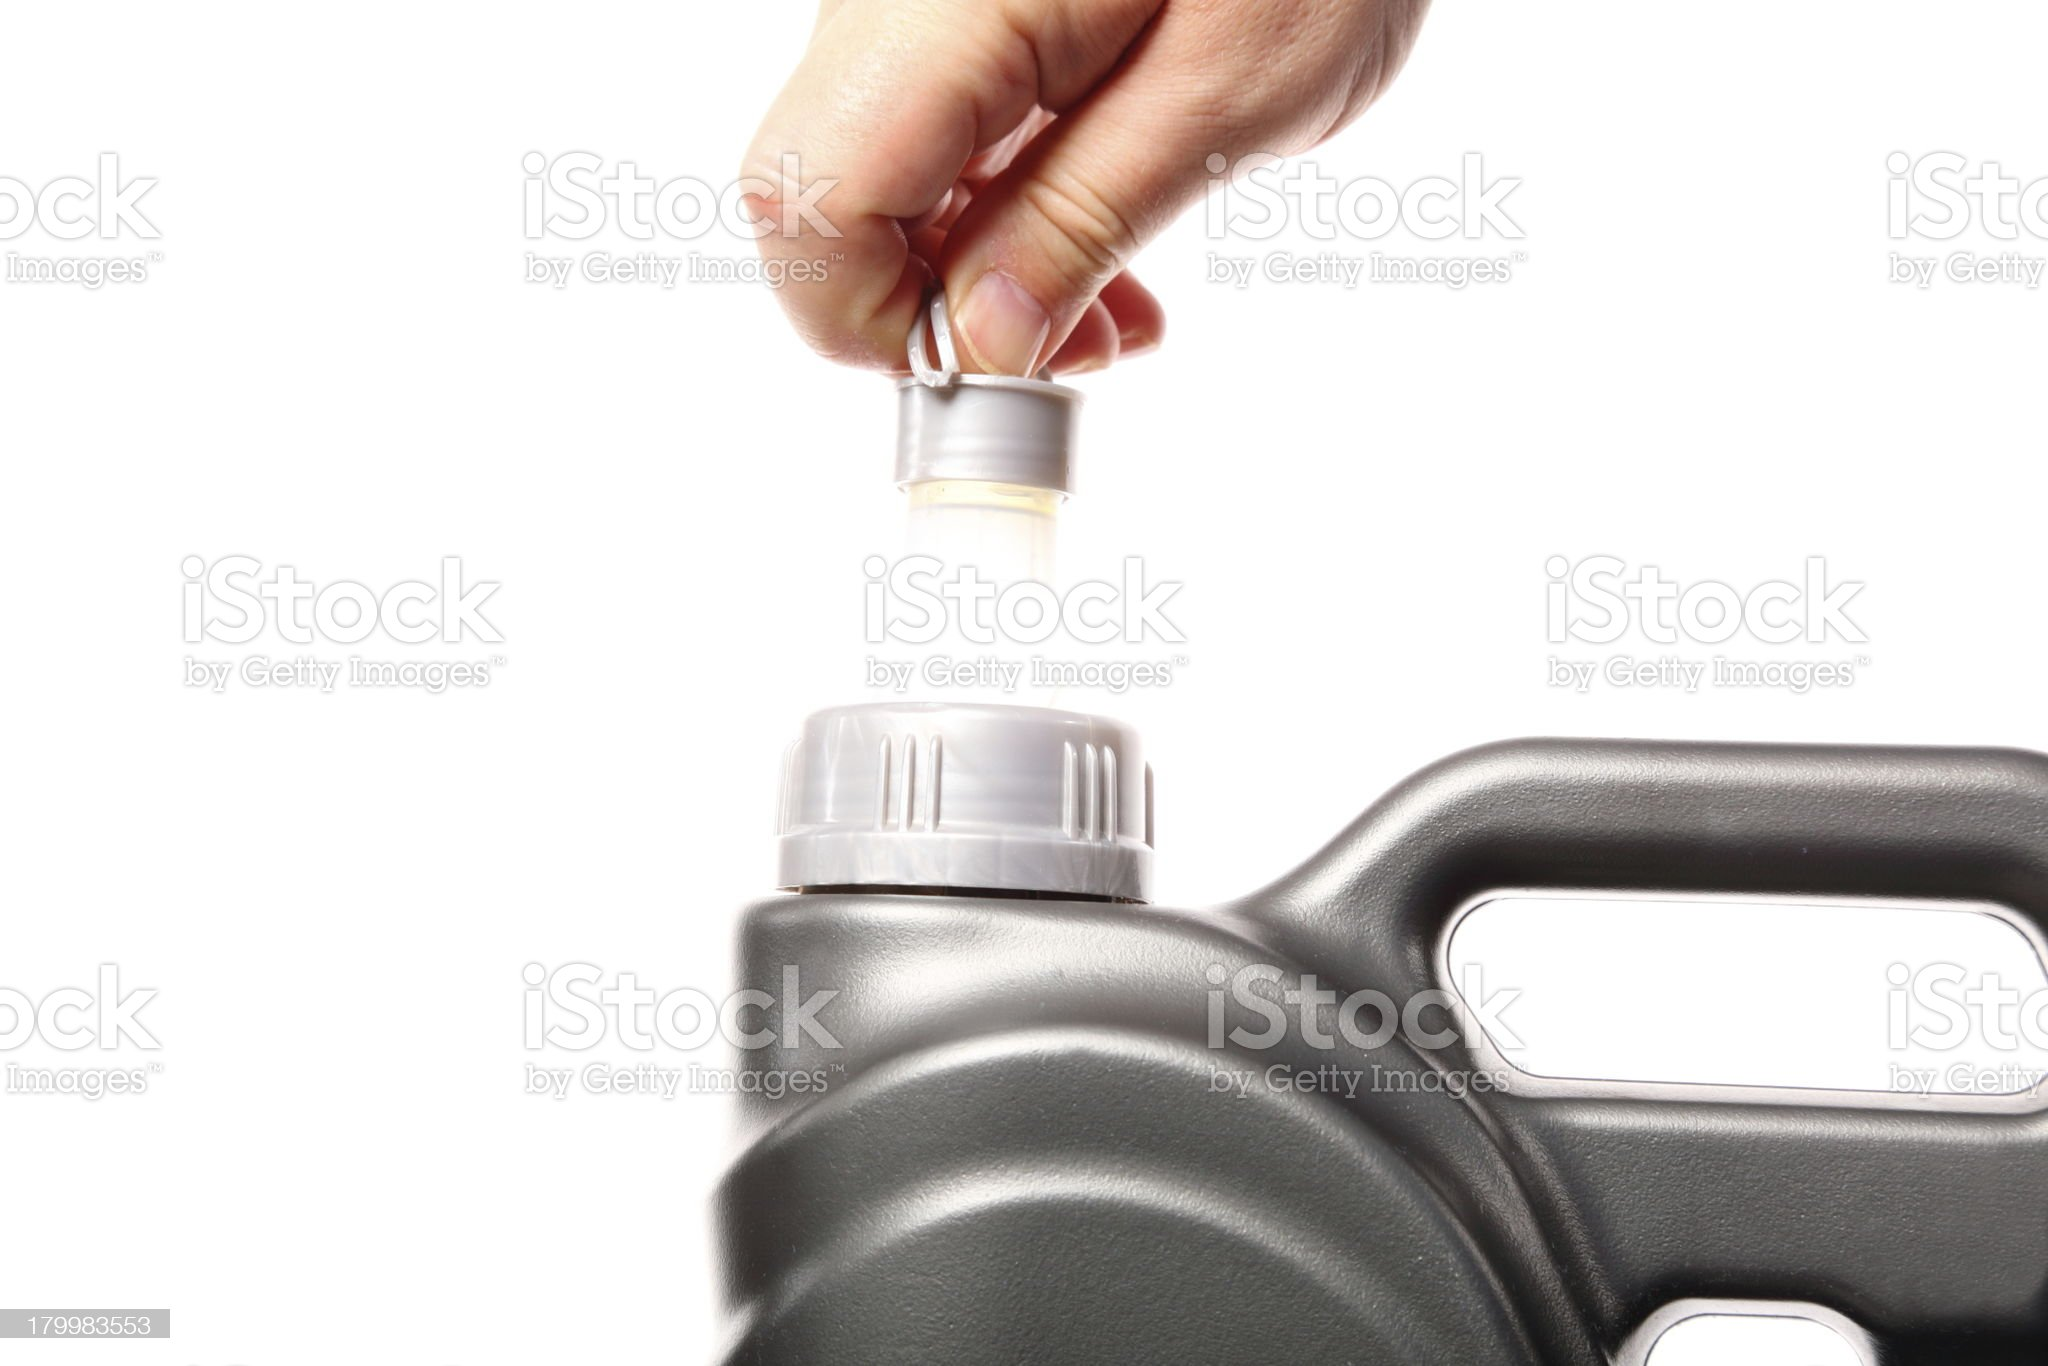 hand opening can with car engine oil isolated royalty-free stock photo